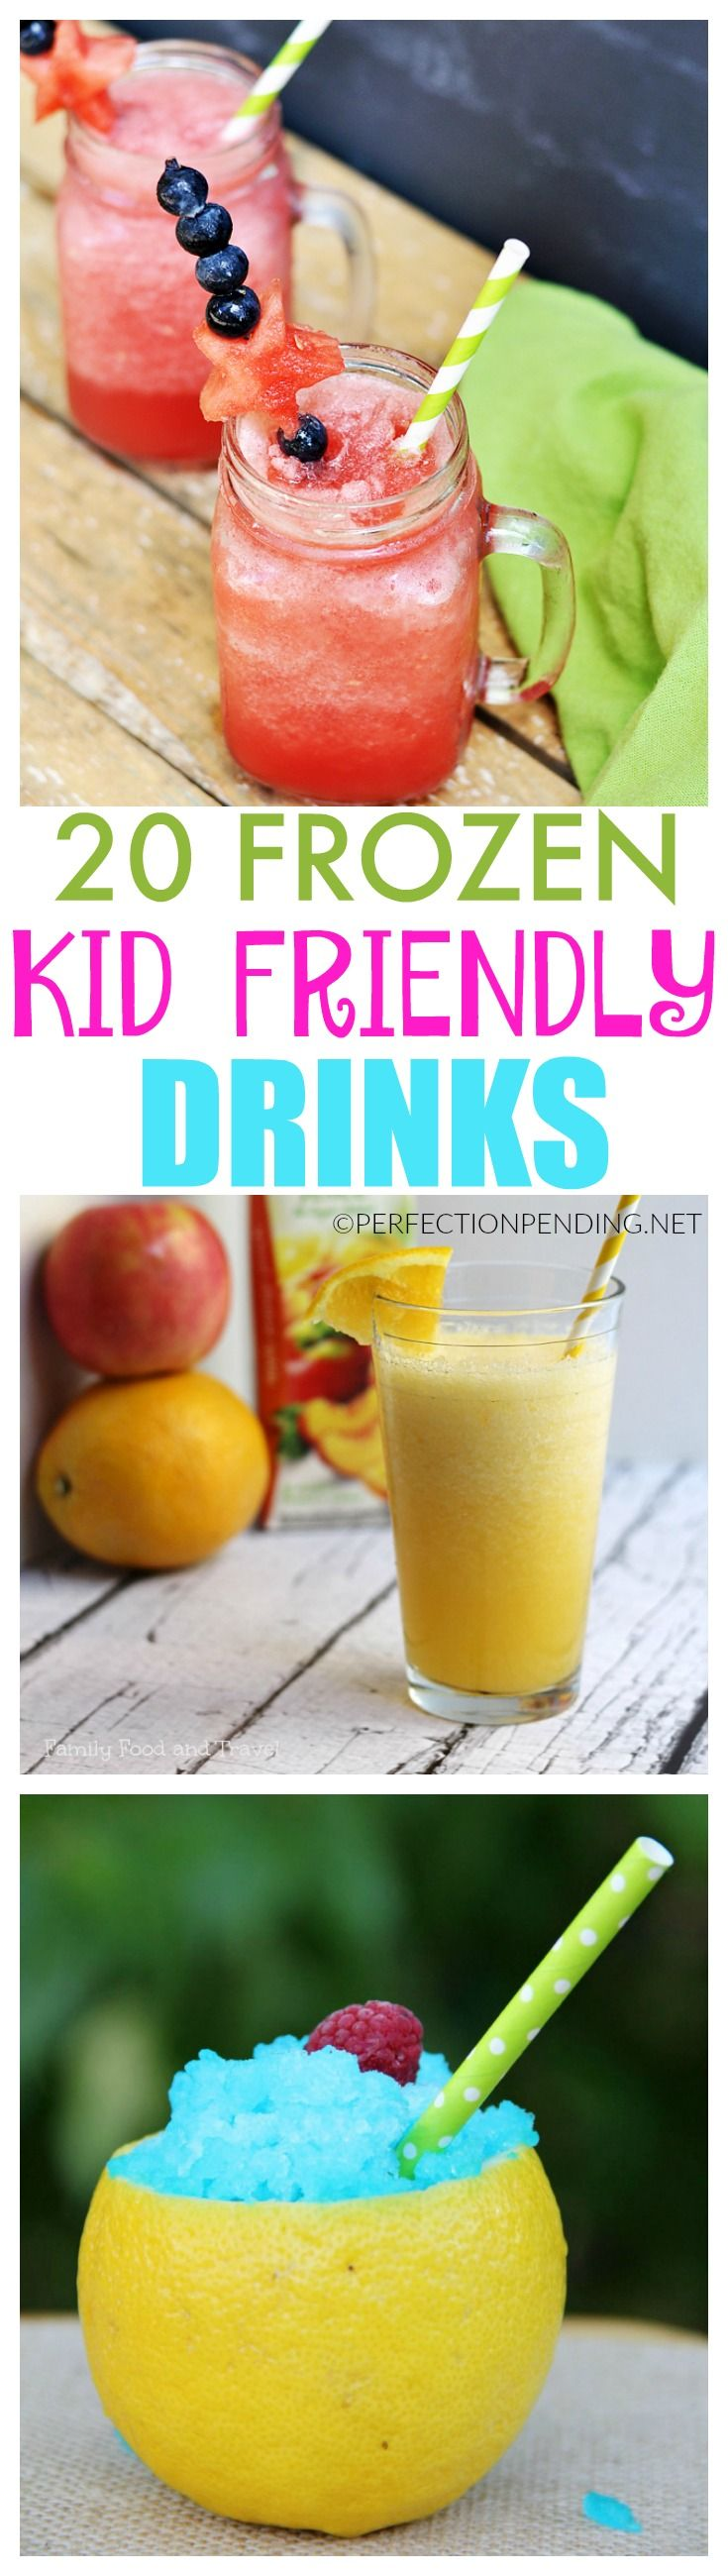 for refreshing non-alcoholic summer drinks that are kid-friendly ...